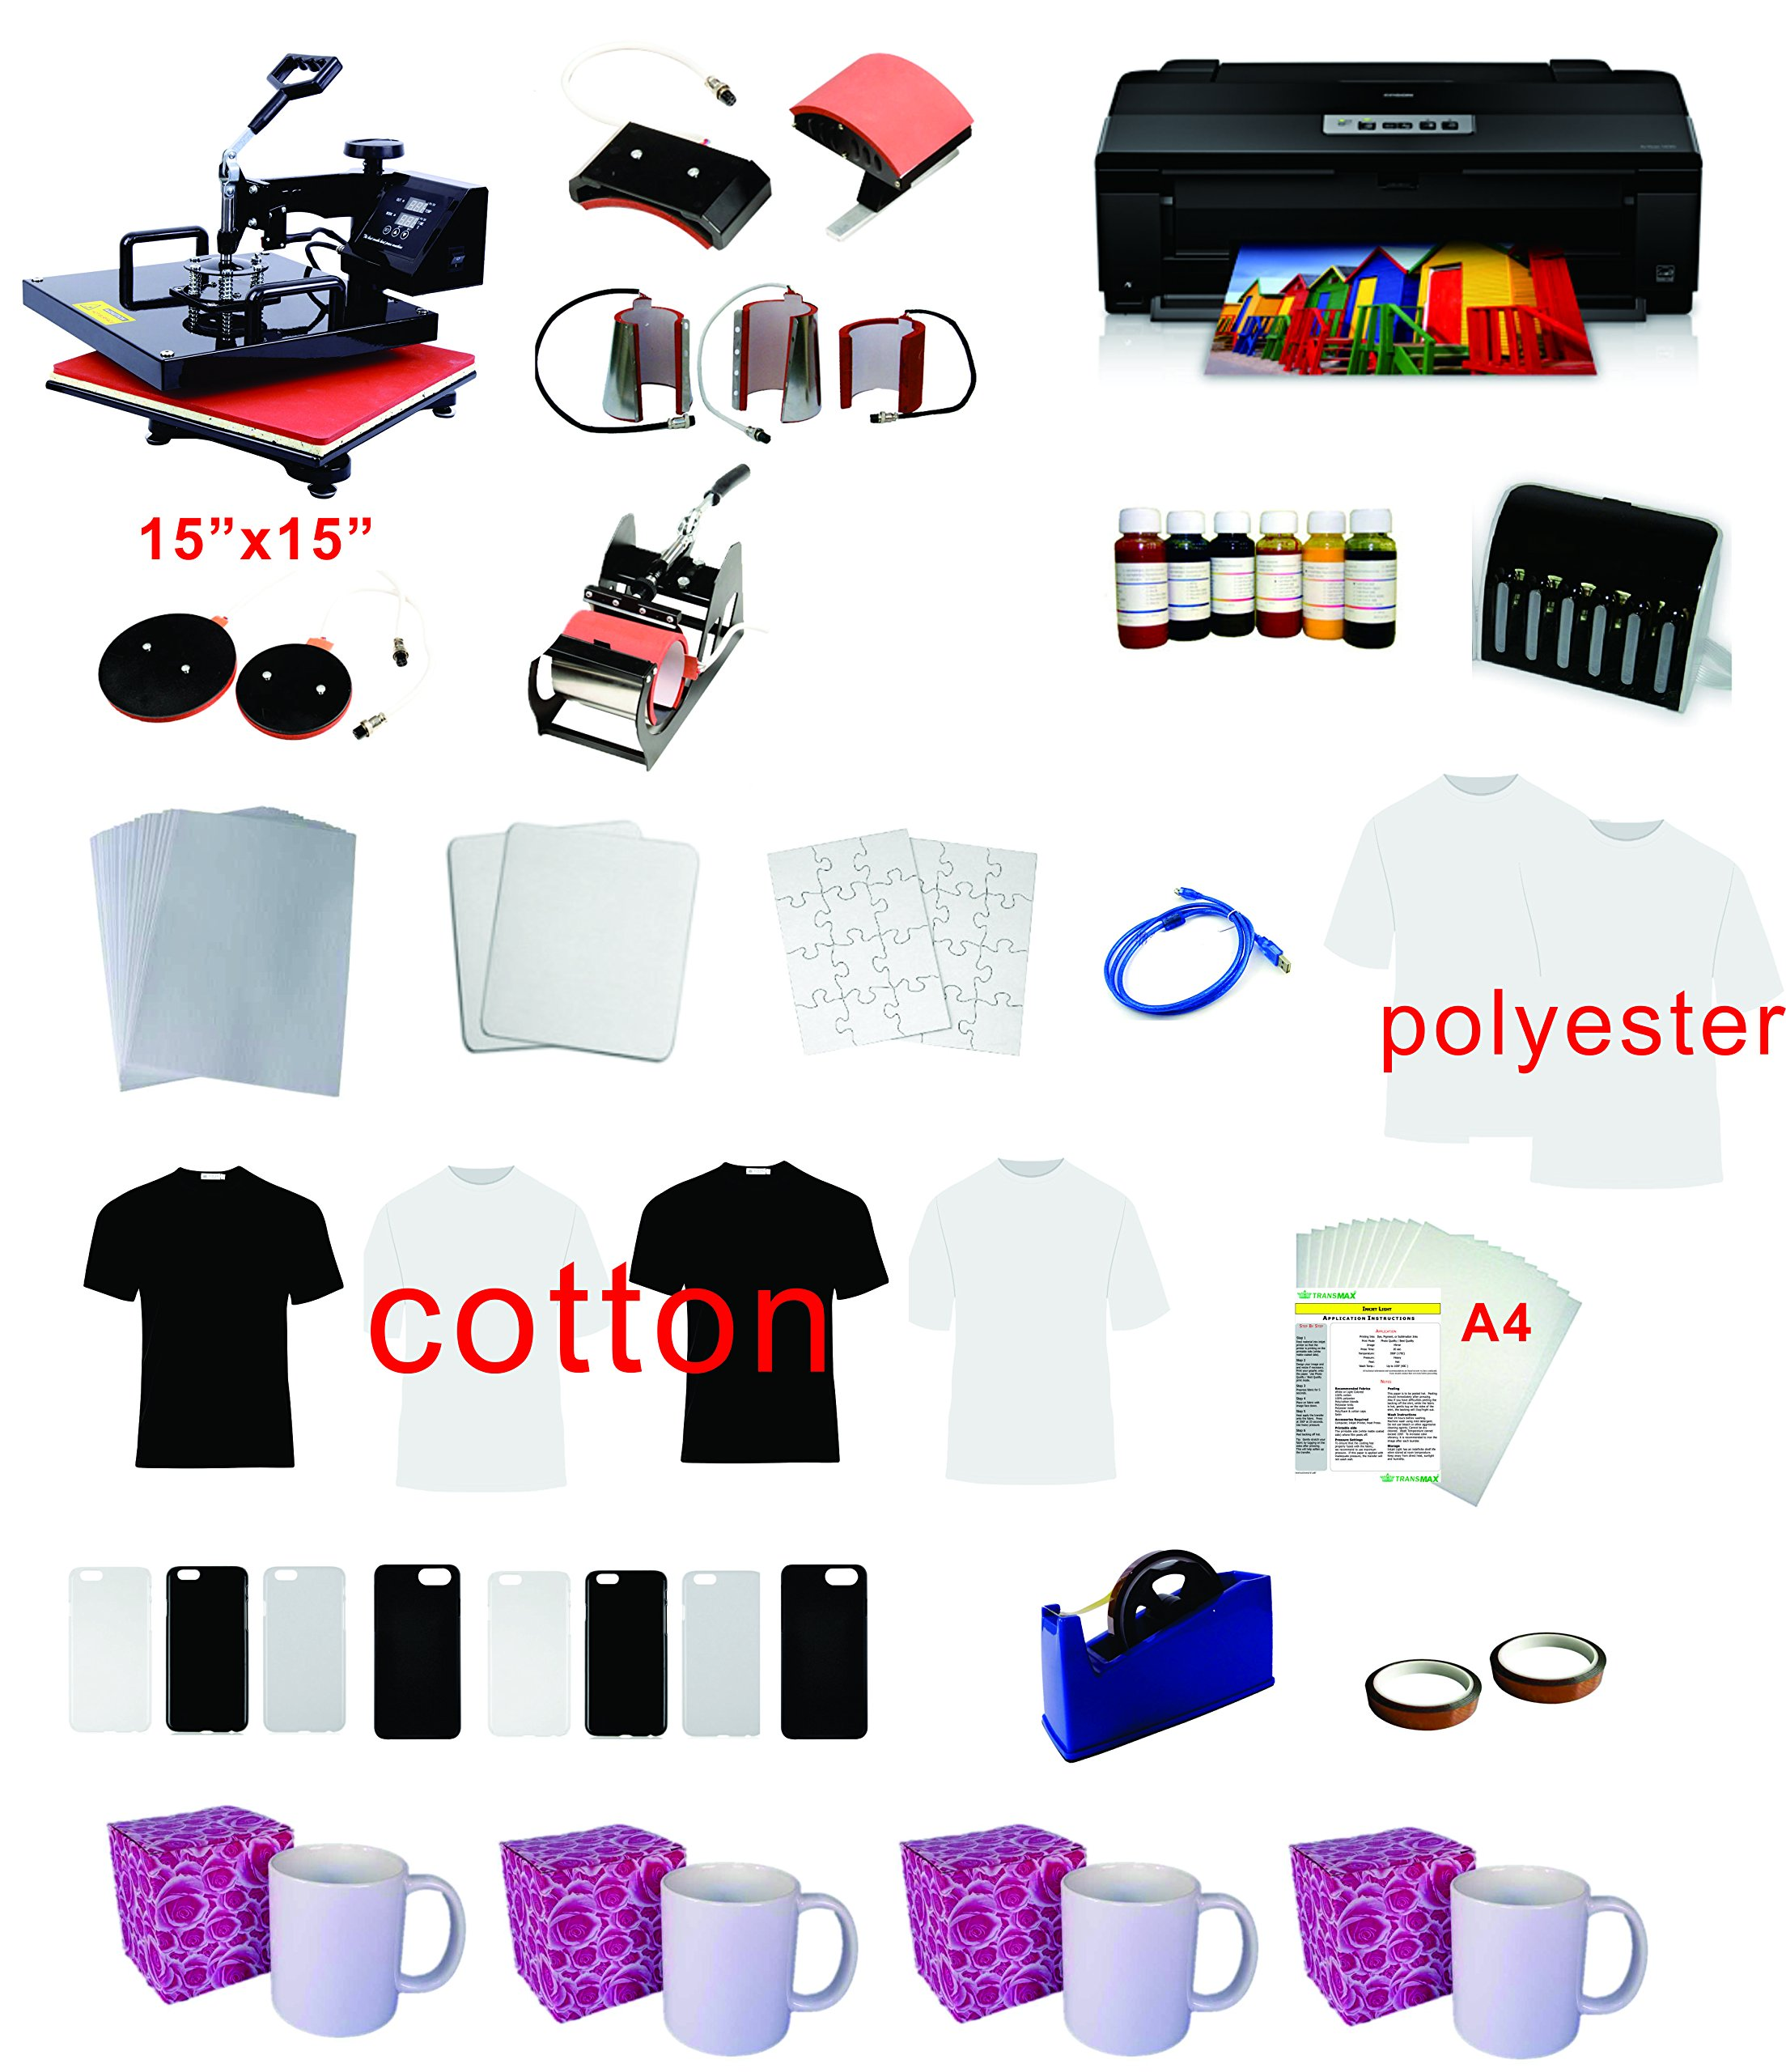 8in1 15''x15'' Pro Sublimation Heat Transfer Machine Epson Printer 1430 CISS KIT by TRANSFER WORLD